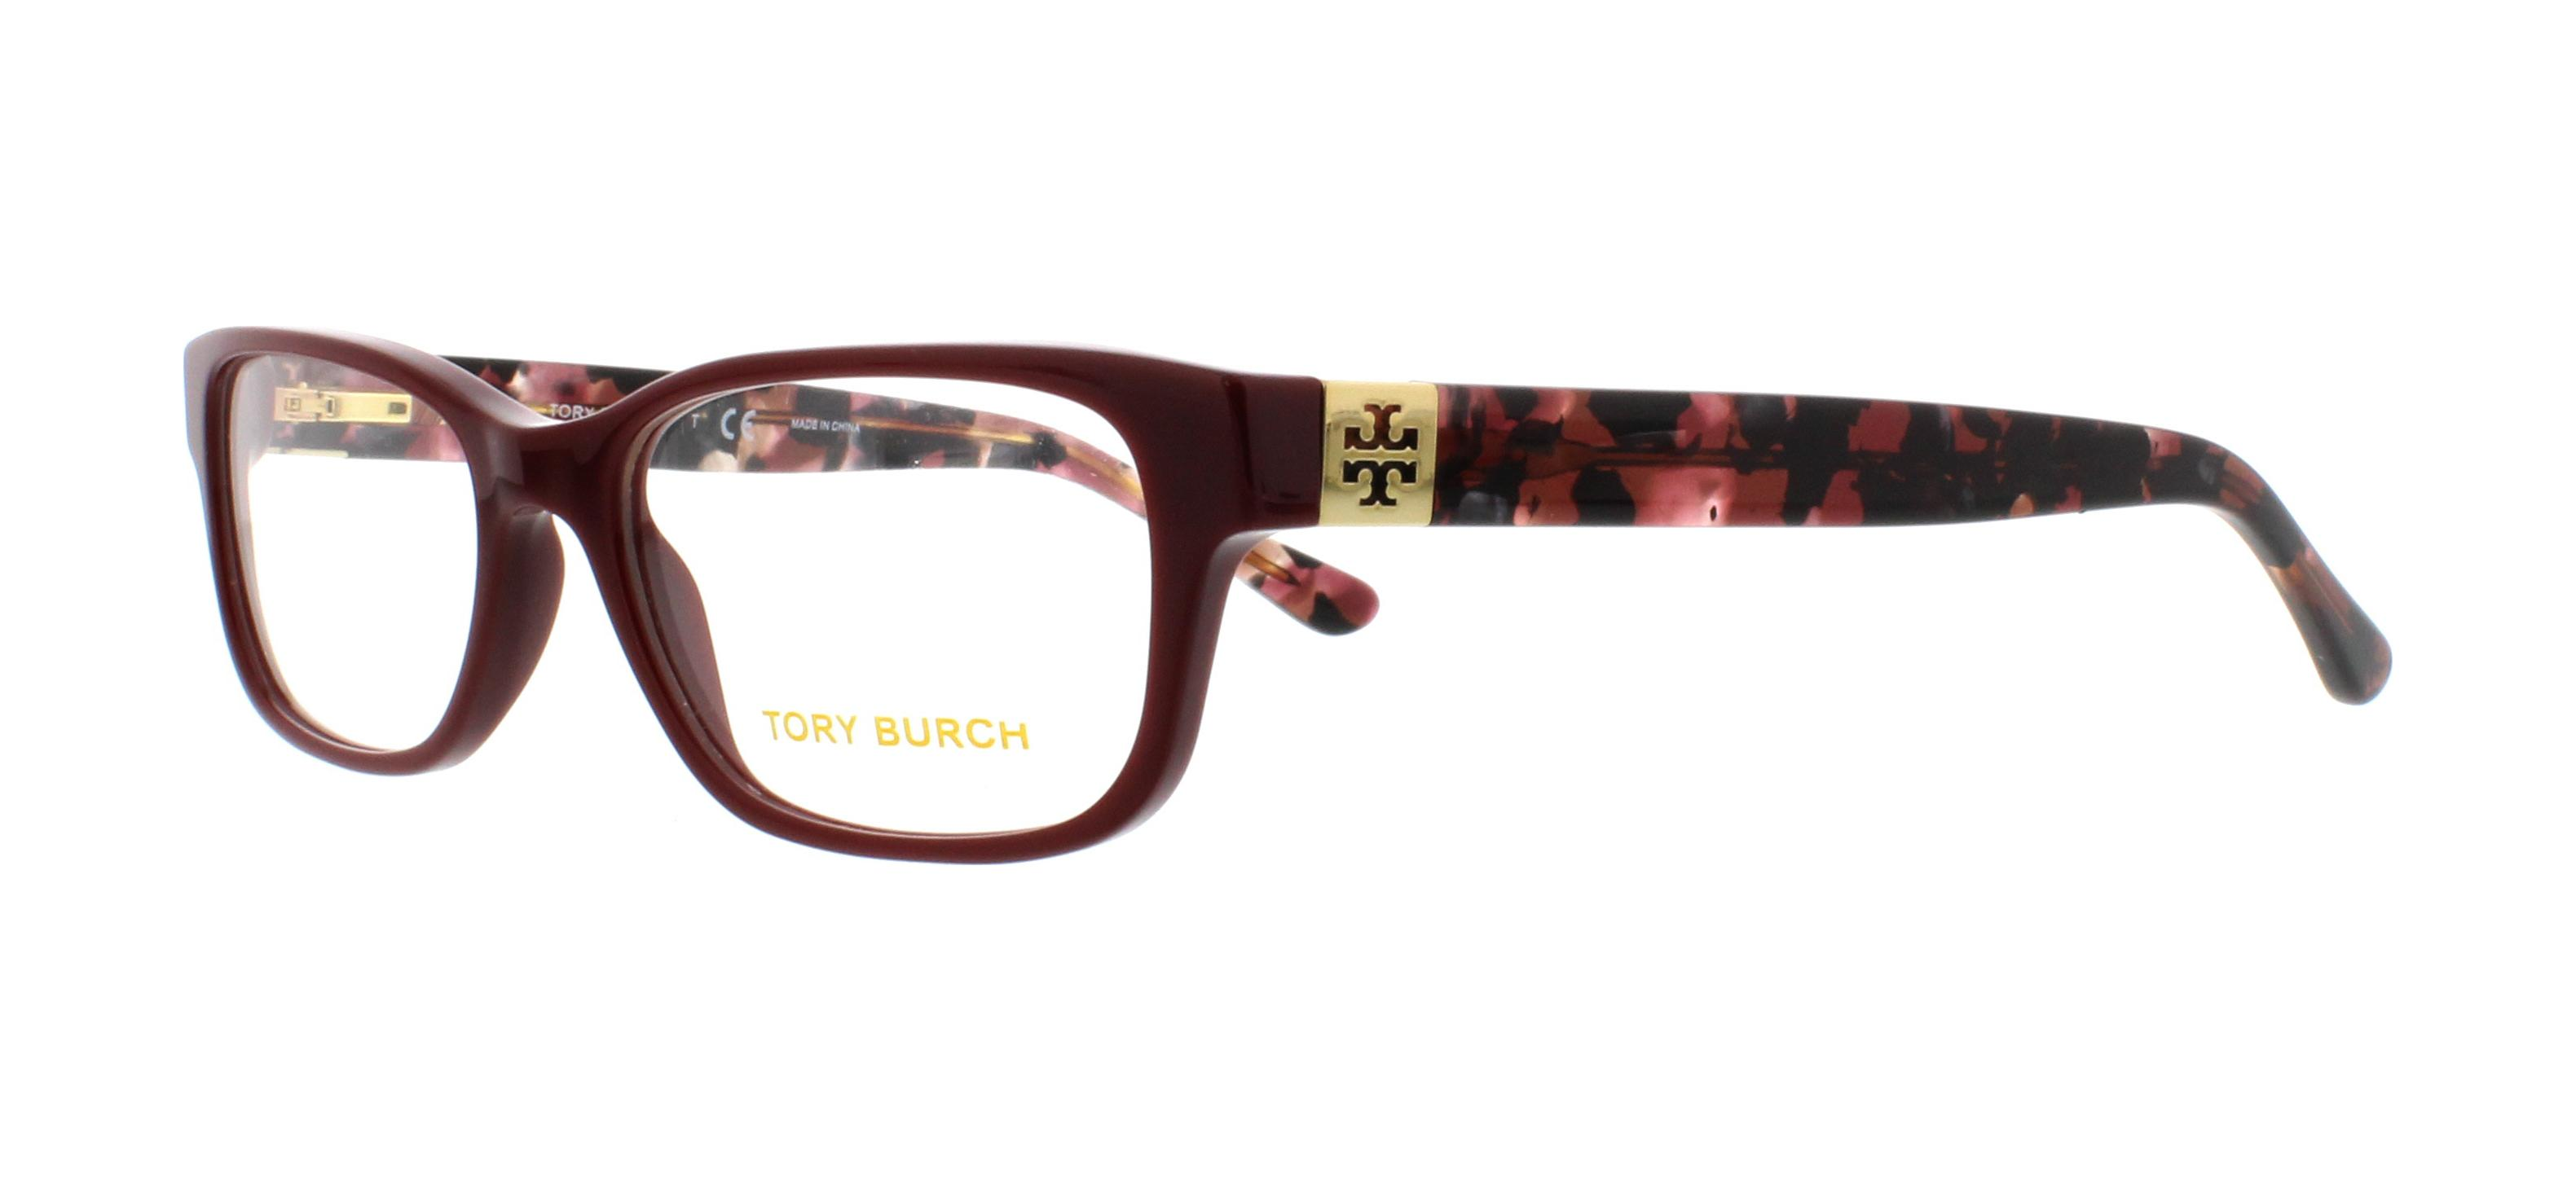 7a58bf9e7f50 Designer Frames Outlet. Tory Burch TY2067